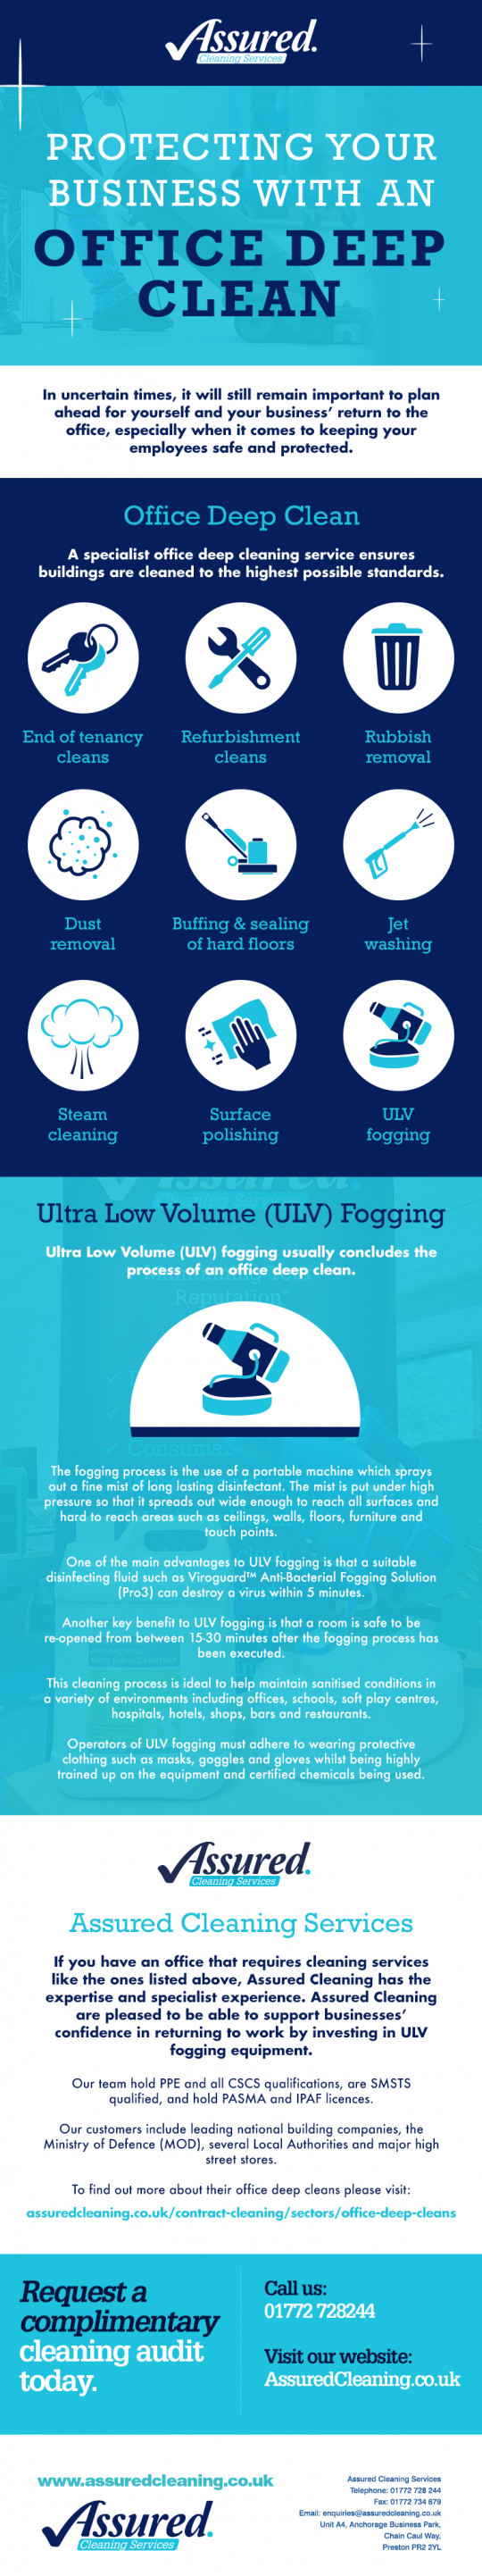 Protecting Your Business With an Office Deep Clean